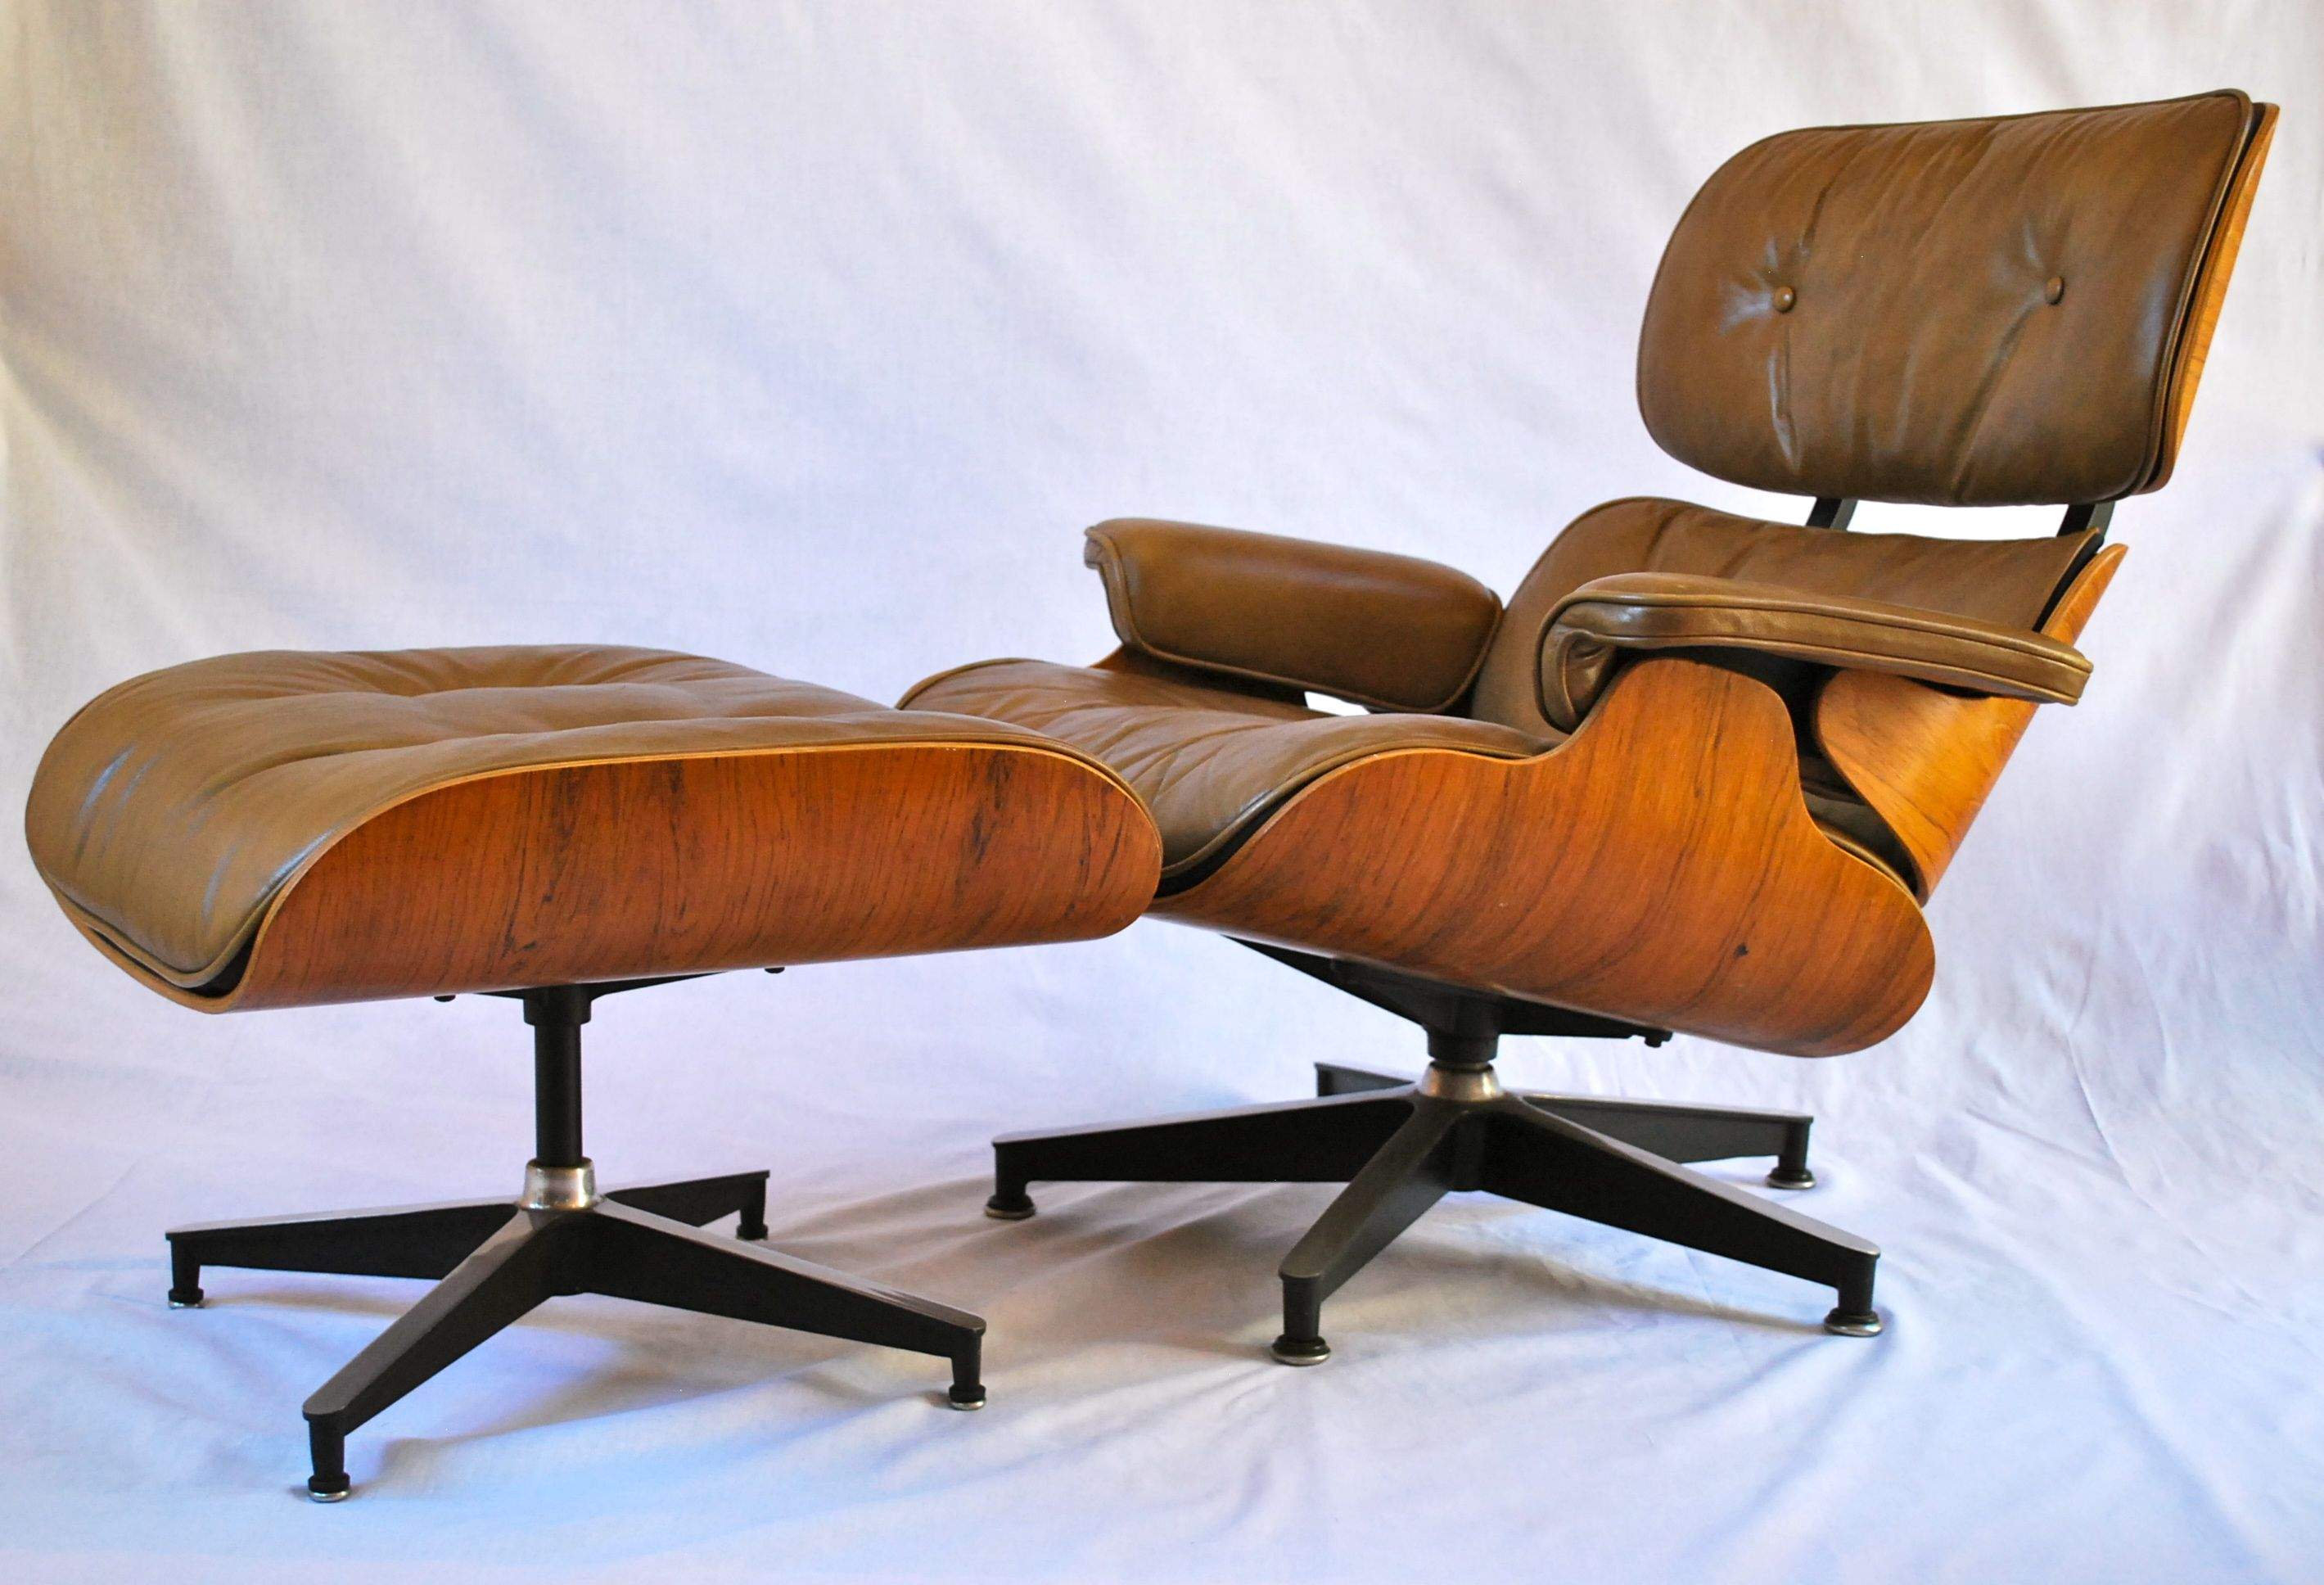 Modern Eames Recliner Chair And Calm Ottoman With Fantastic Leather Brown Cushion And Trendy Soft Brown Wooden Eames Recliner Lounge Stuhl Stuhl Design Eames